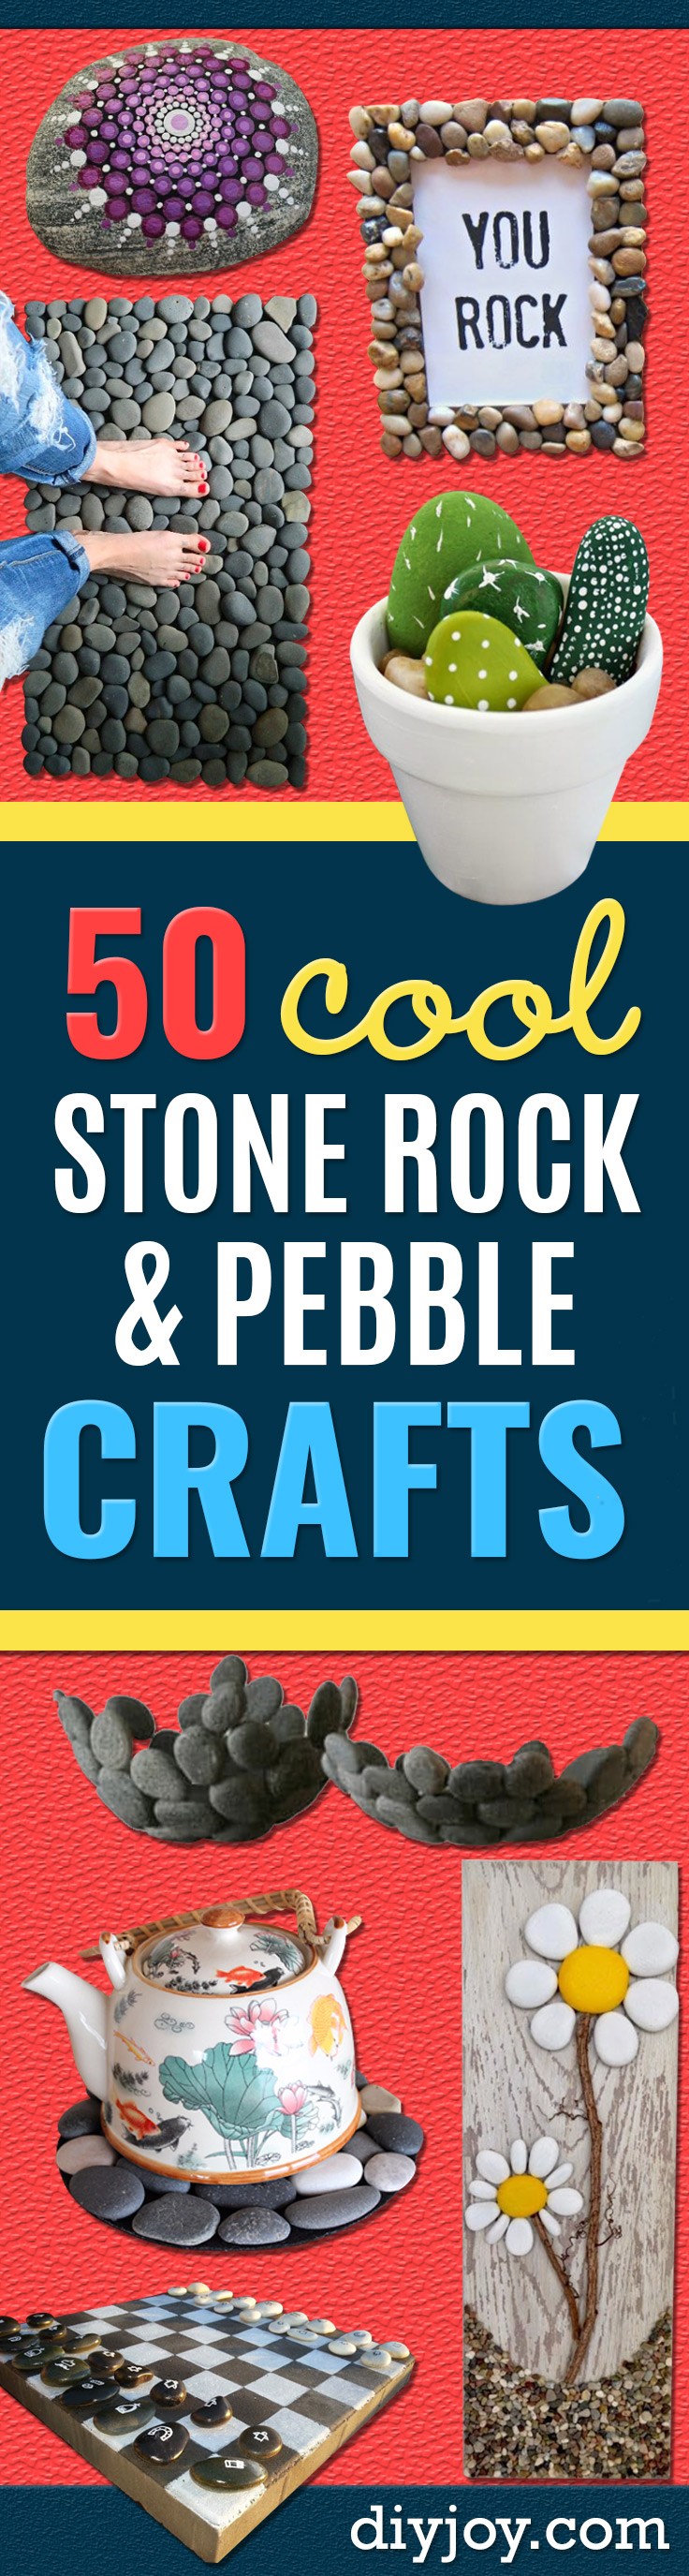 rock craft ideas -Pebble and Stone Crafts - DIY Ideas Using Rocks, Stones and Pebble Art - Mosaics, Craft Projects, Home Decor and DIY Gifts You Can Make On A Budget